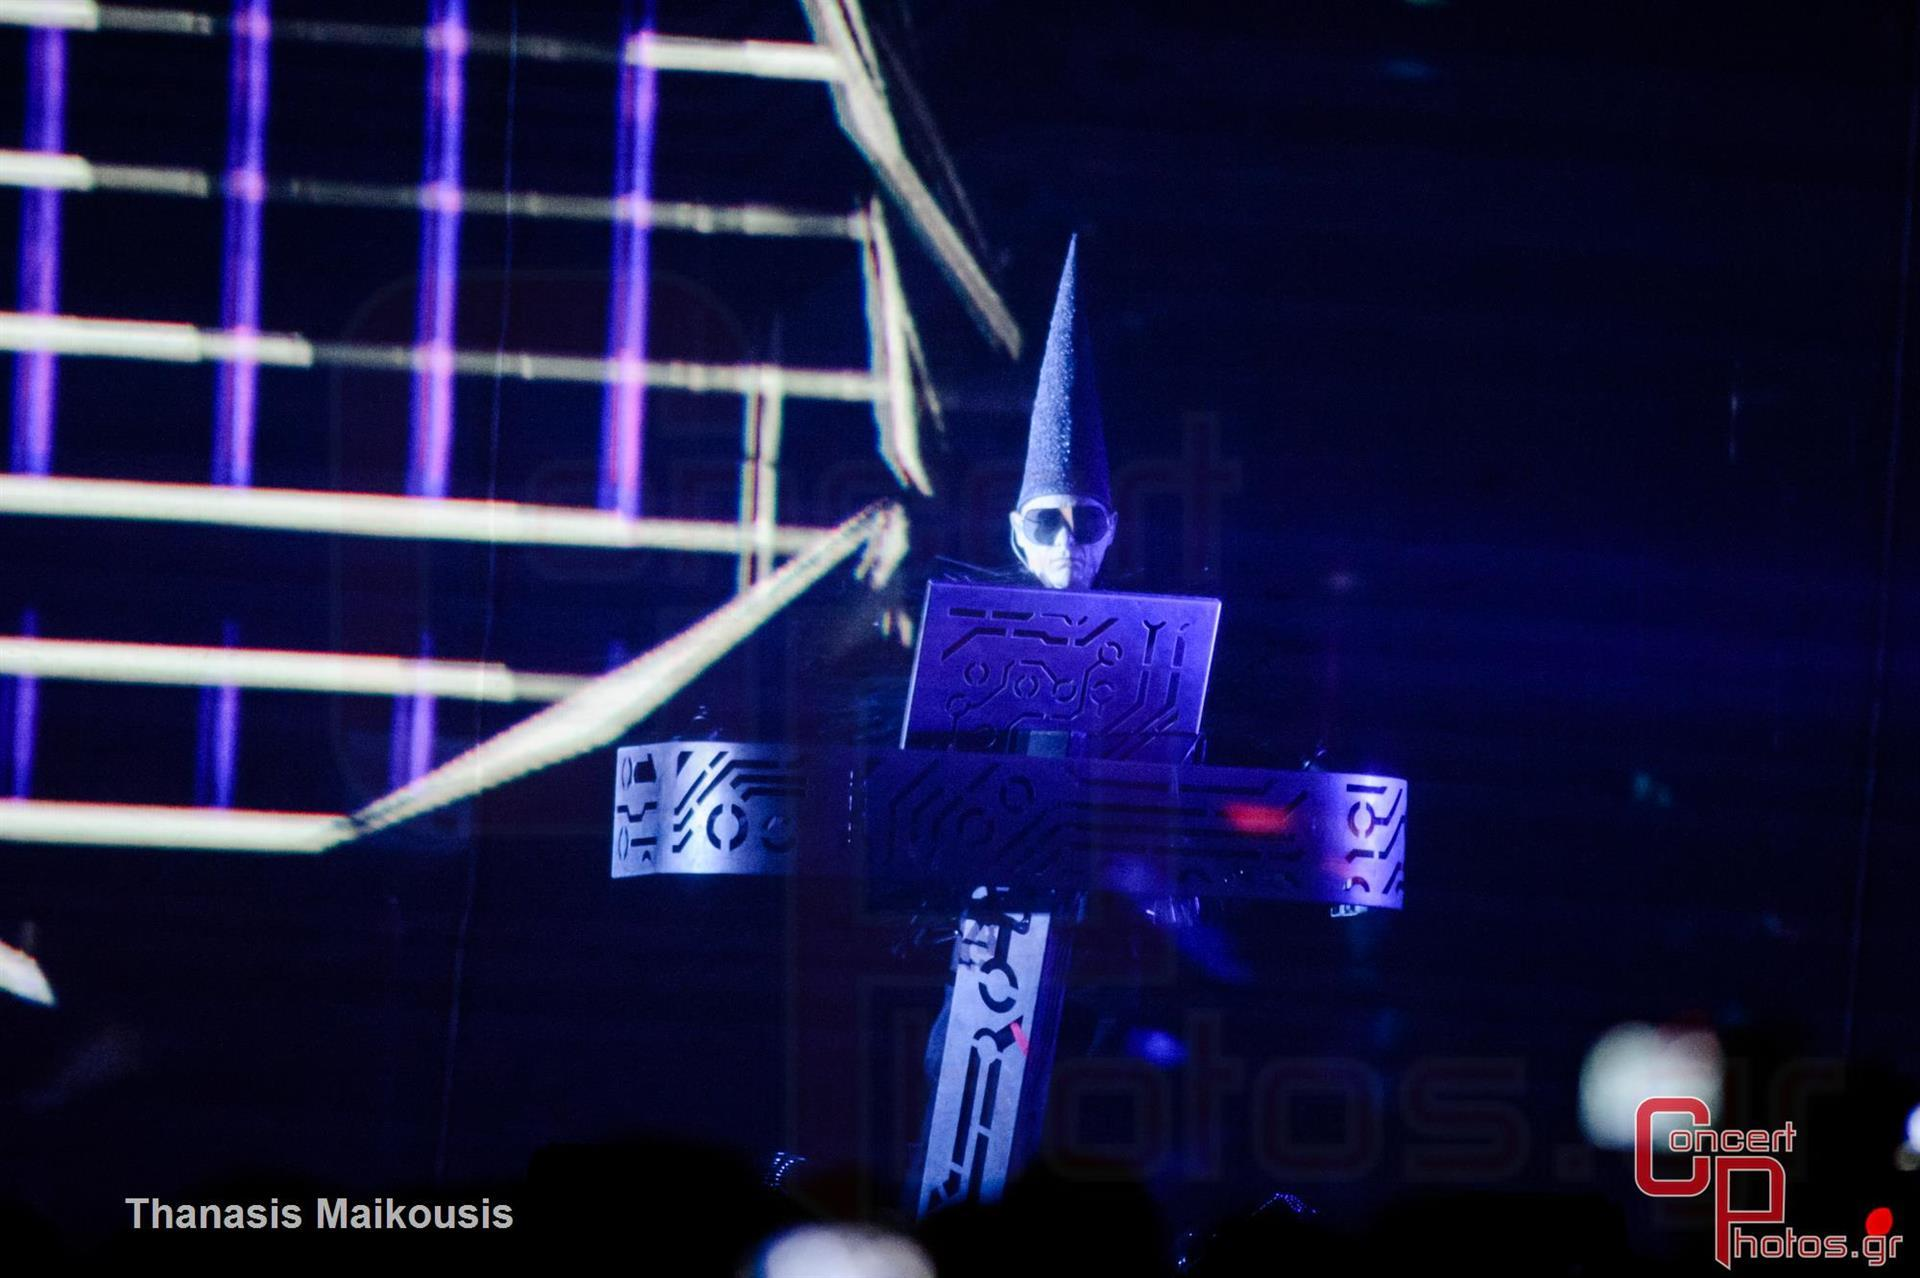 Pet Shop Boys-Pet Shop Boys photographer: Thanasis Maikousis - concertphotos_-9793